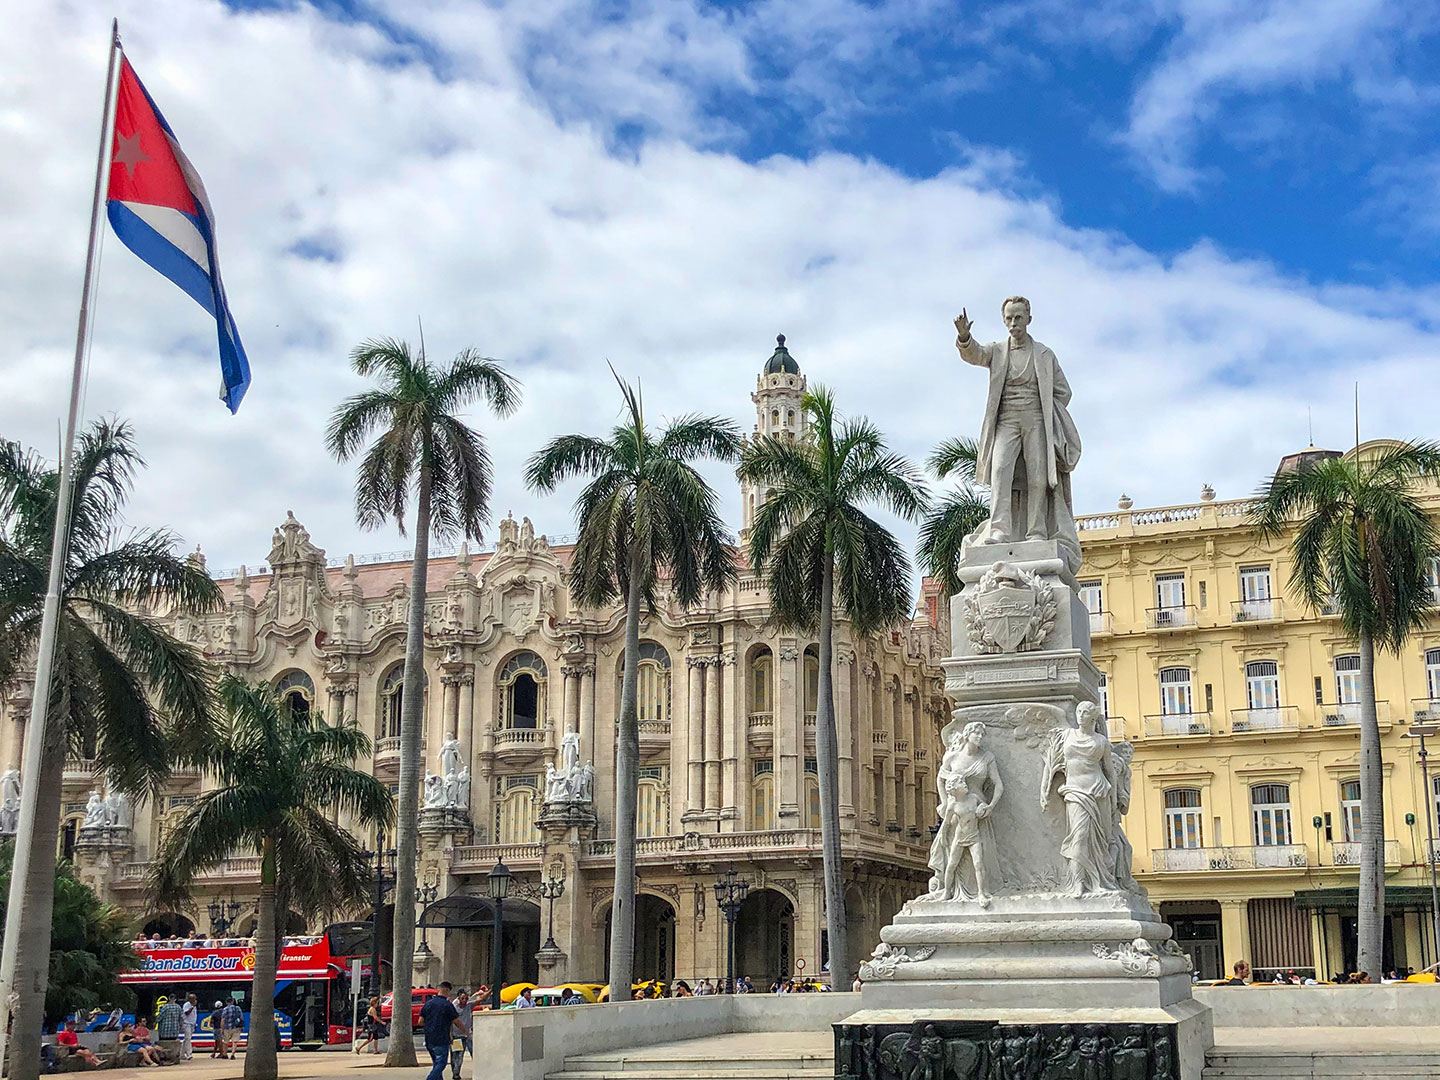 Parque Central with the cuban flag in Havana